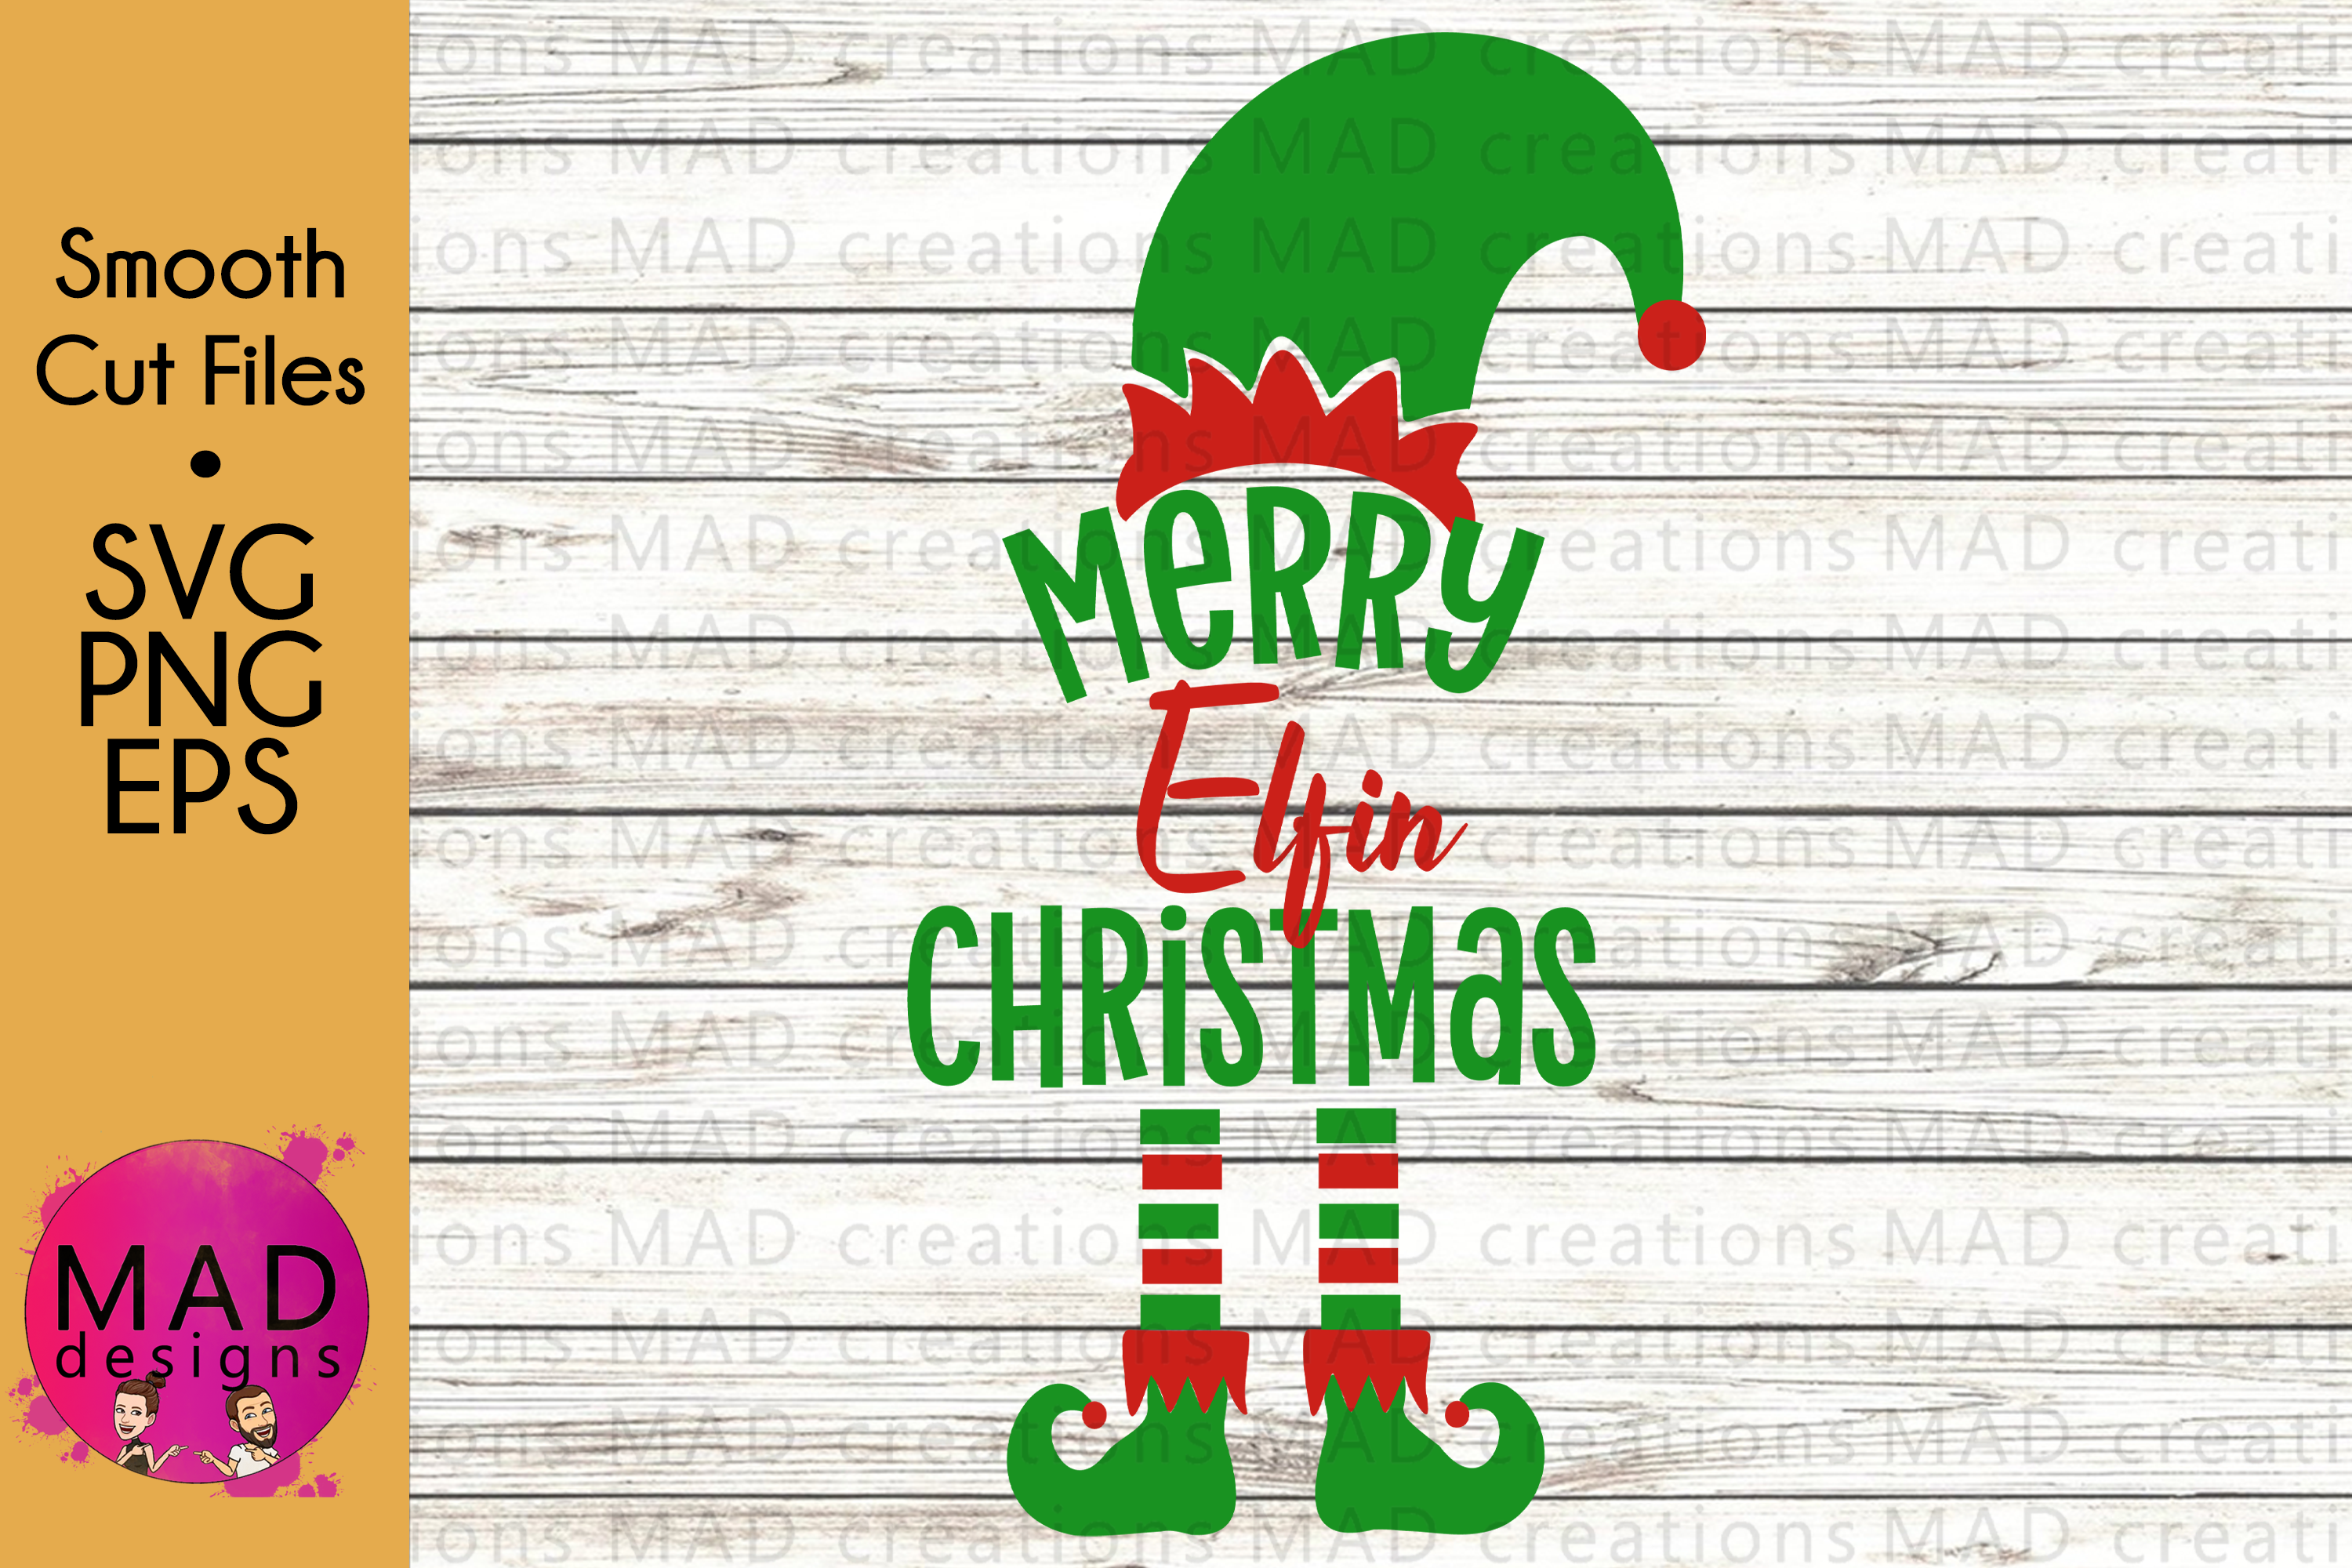 Free Svg Christmas Signs Free Svg Cut Files Create Your Diy Projects Using Your Cricut Explore Silhouette And More The Free Cut Files Include Svg Dxf Eps And Png Files